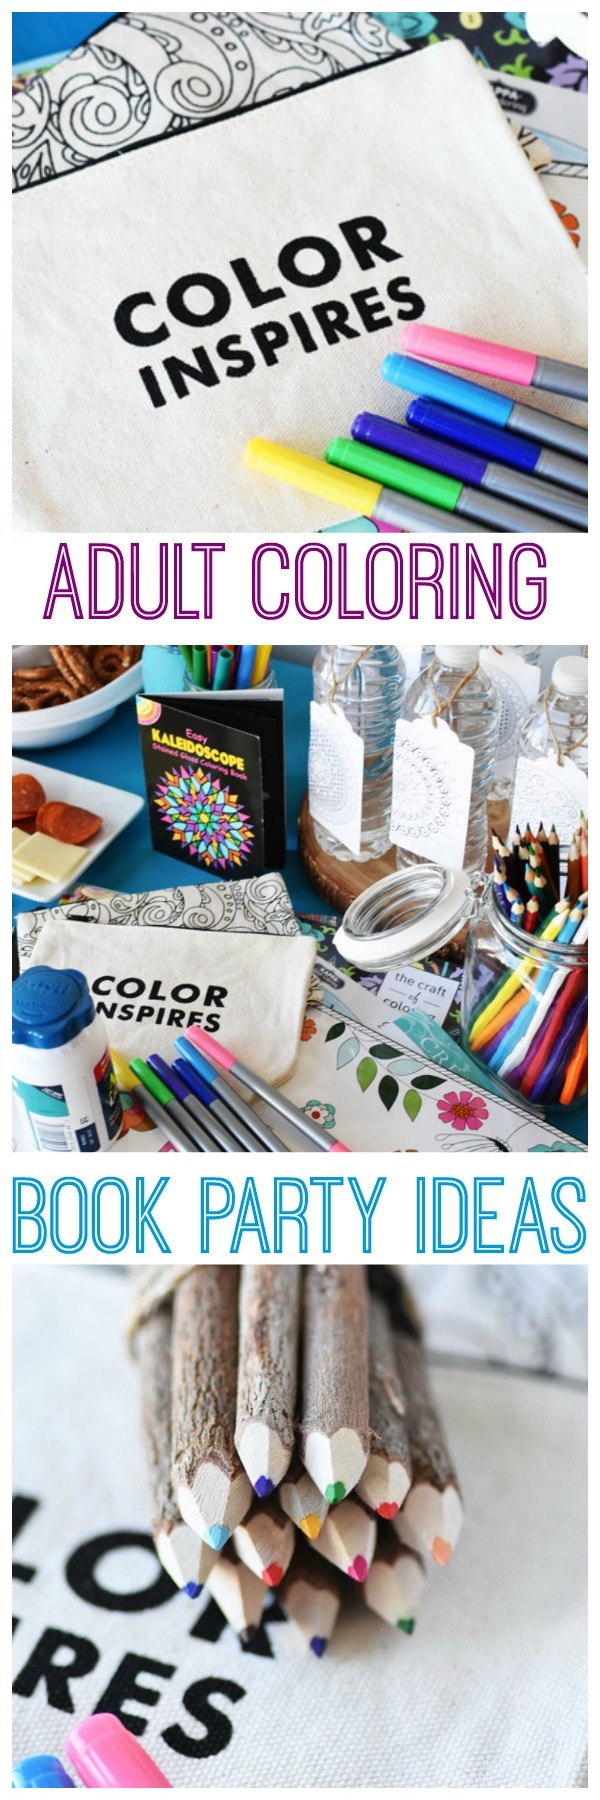 adult-coloring-book-party-ideas